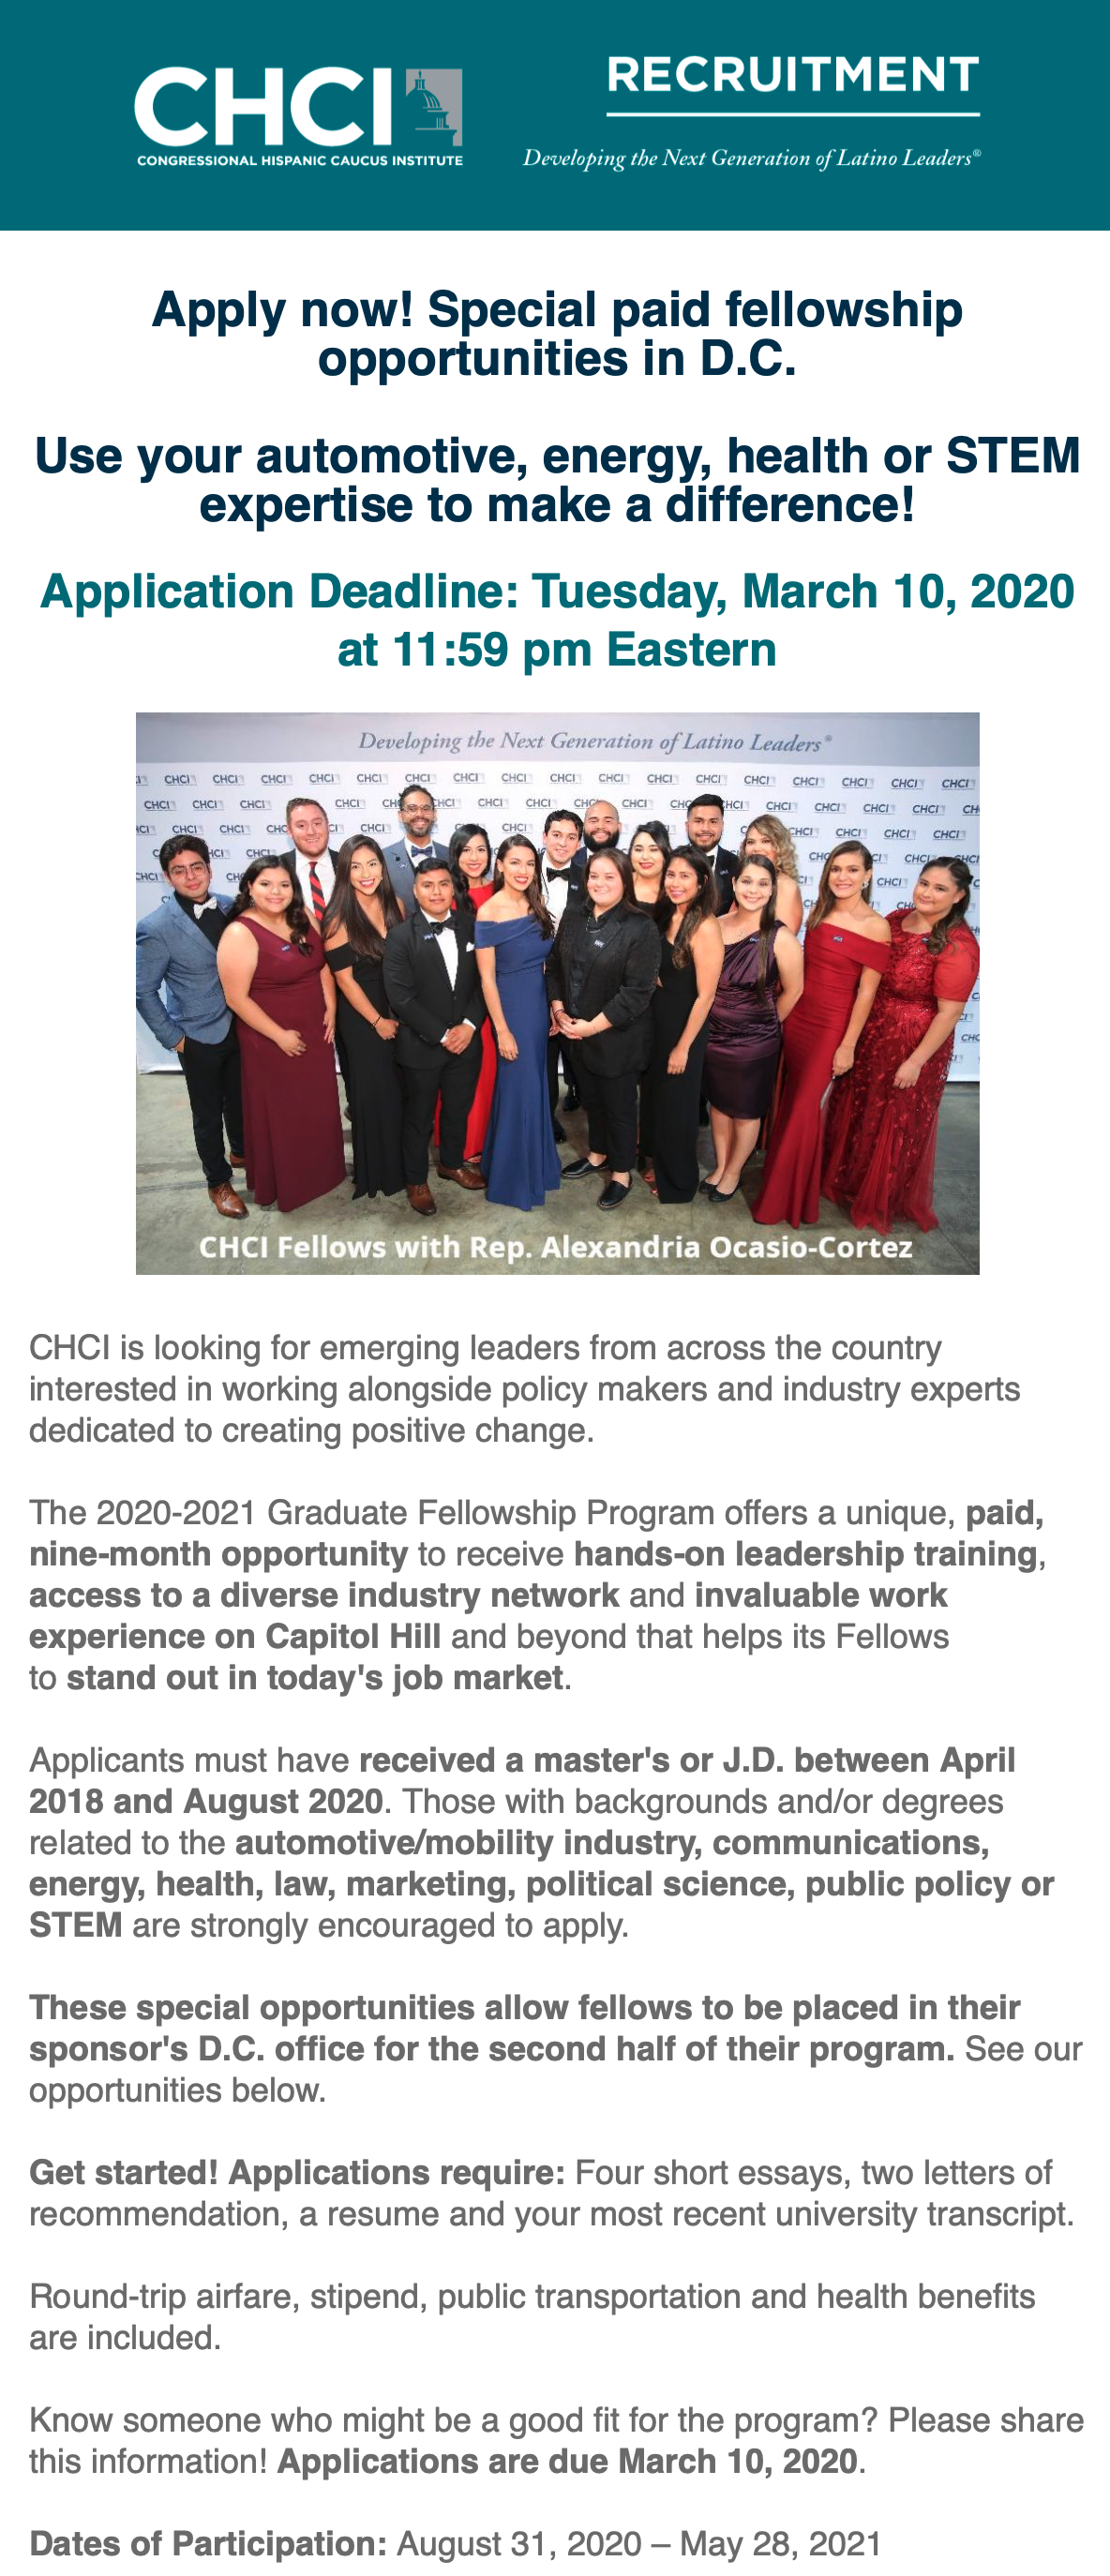 CHCI Recruitment